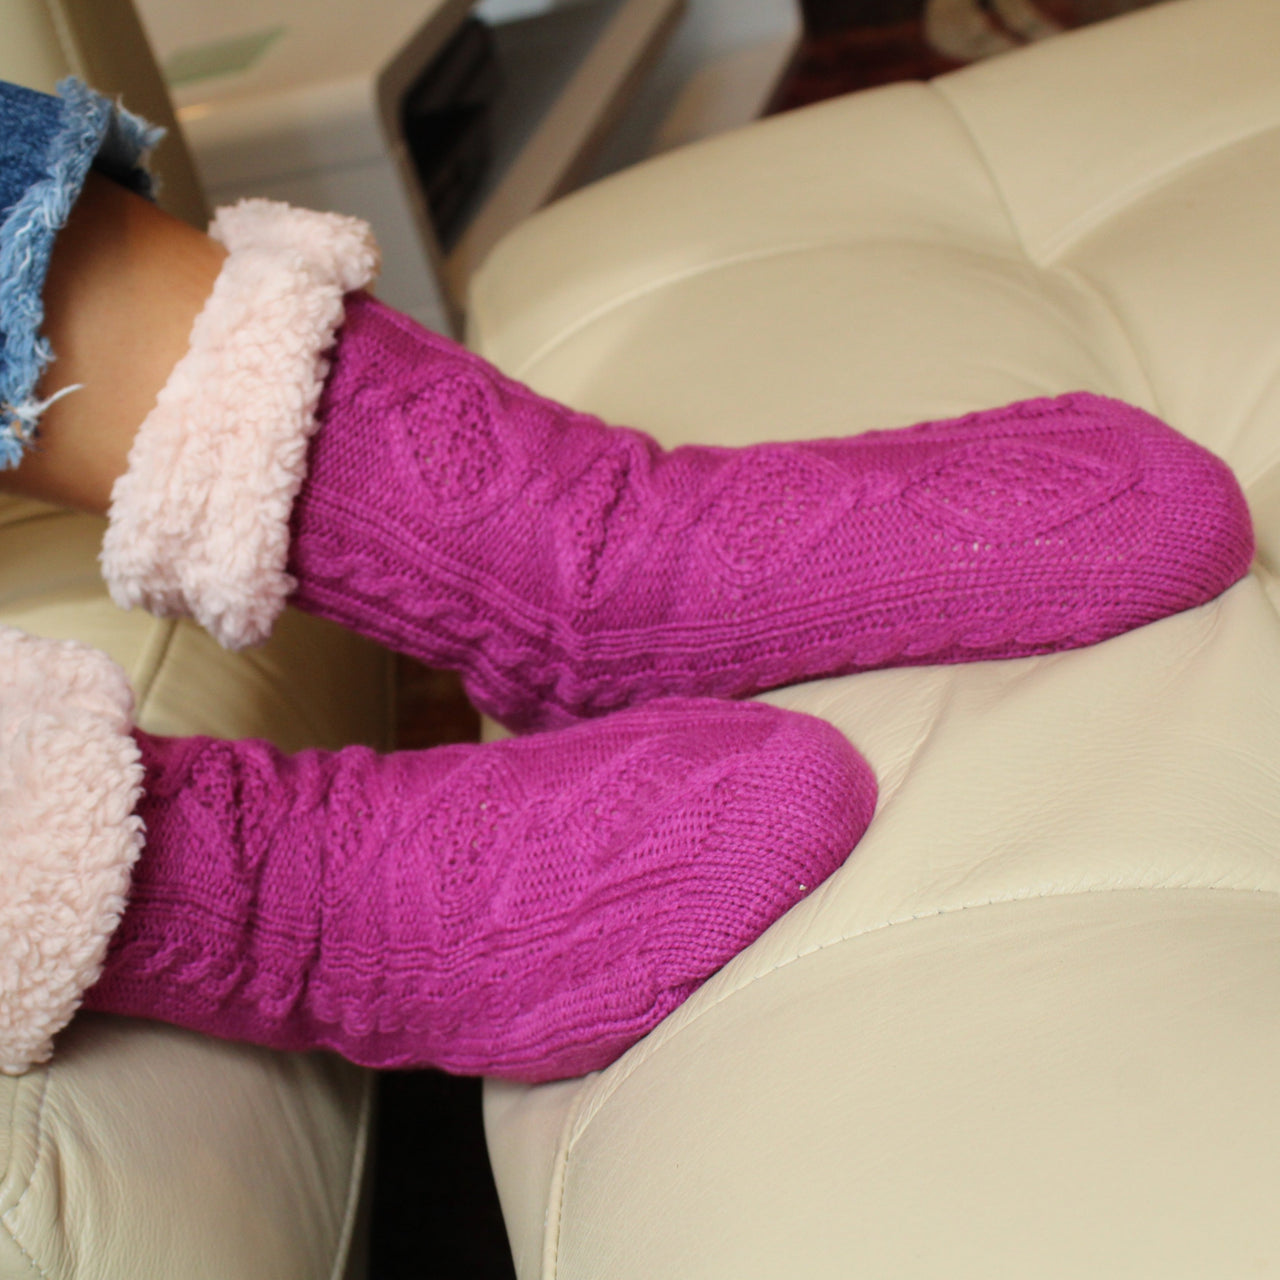 Plush Warm Crew Sock With Sherpa Boa Lining | Cable Knit | With Grips | Fuchsia - CHERRYSTONE